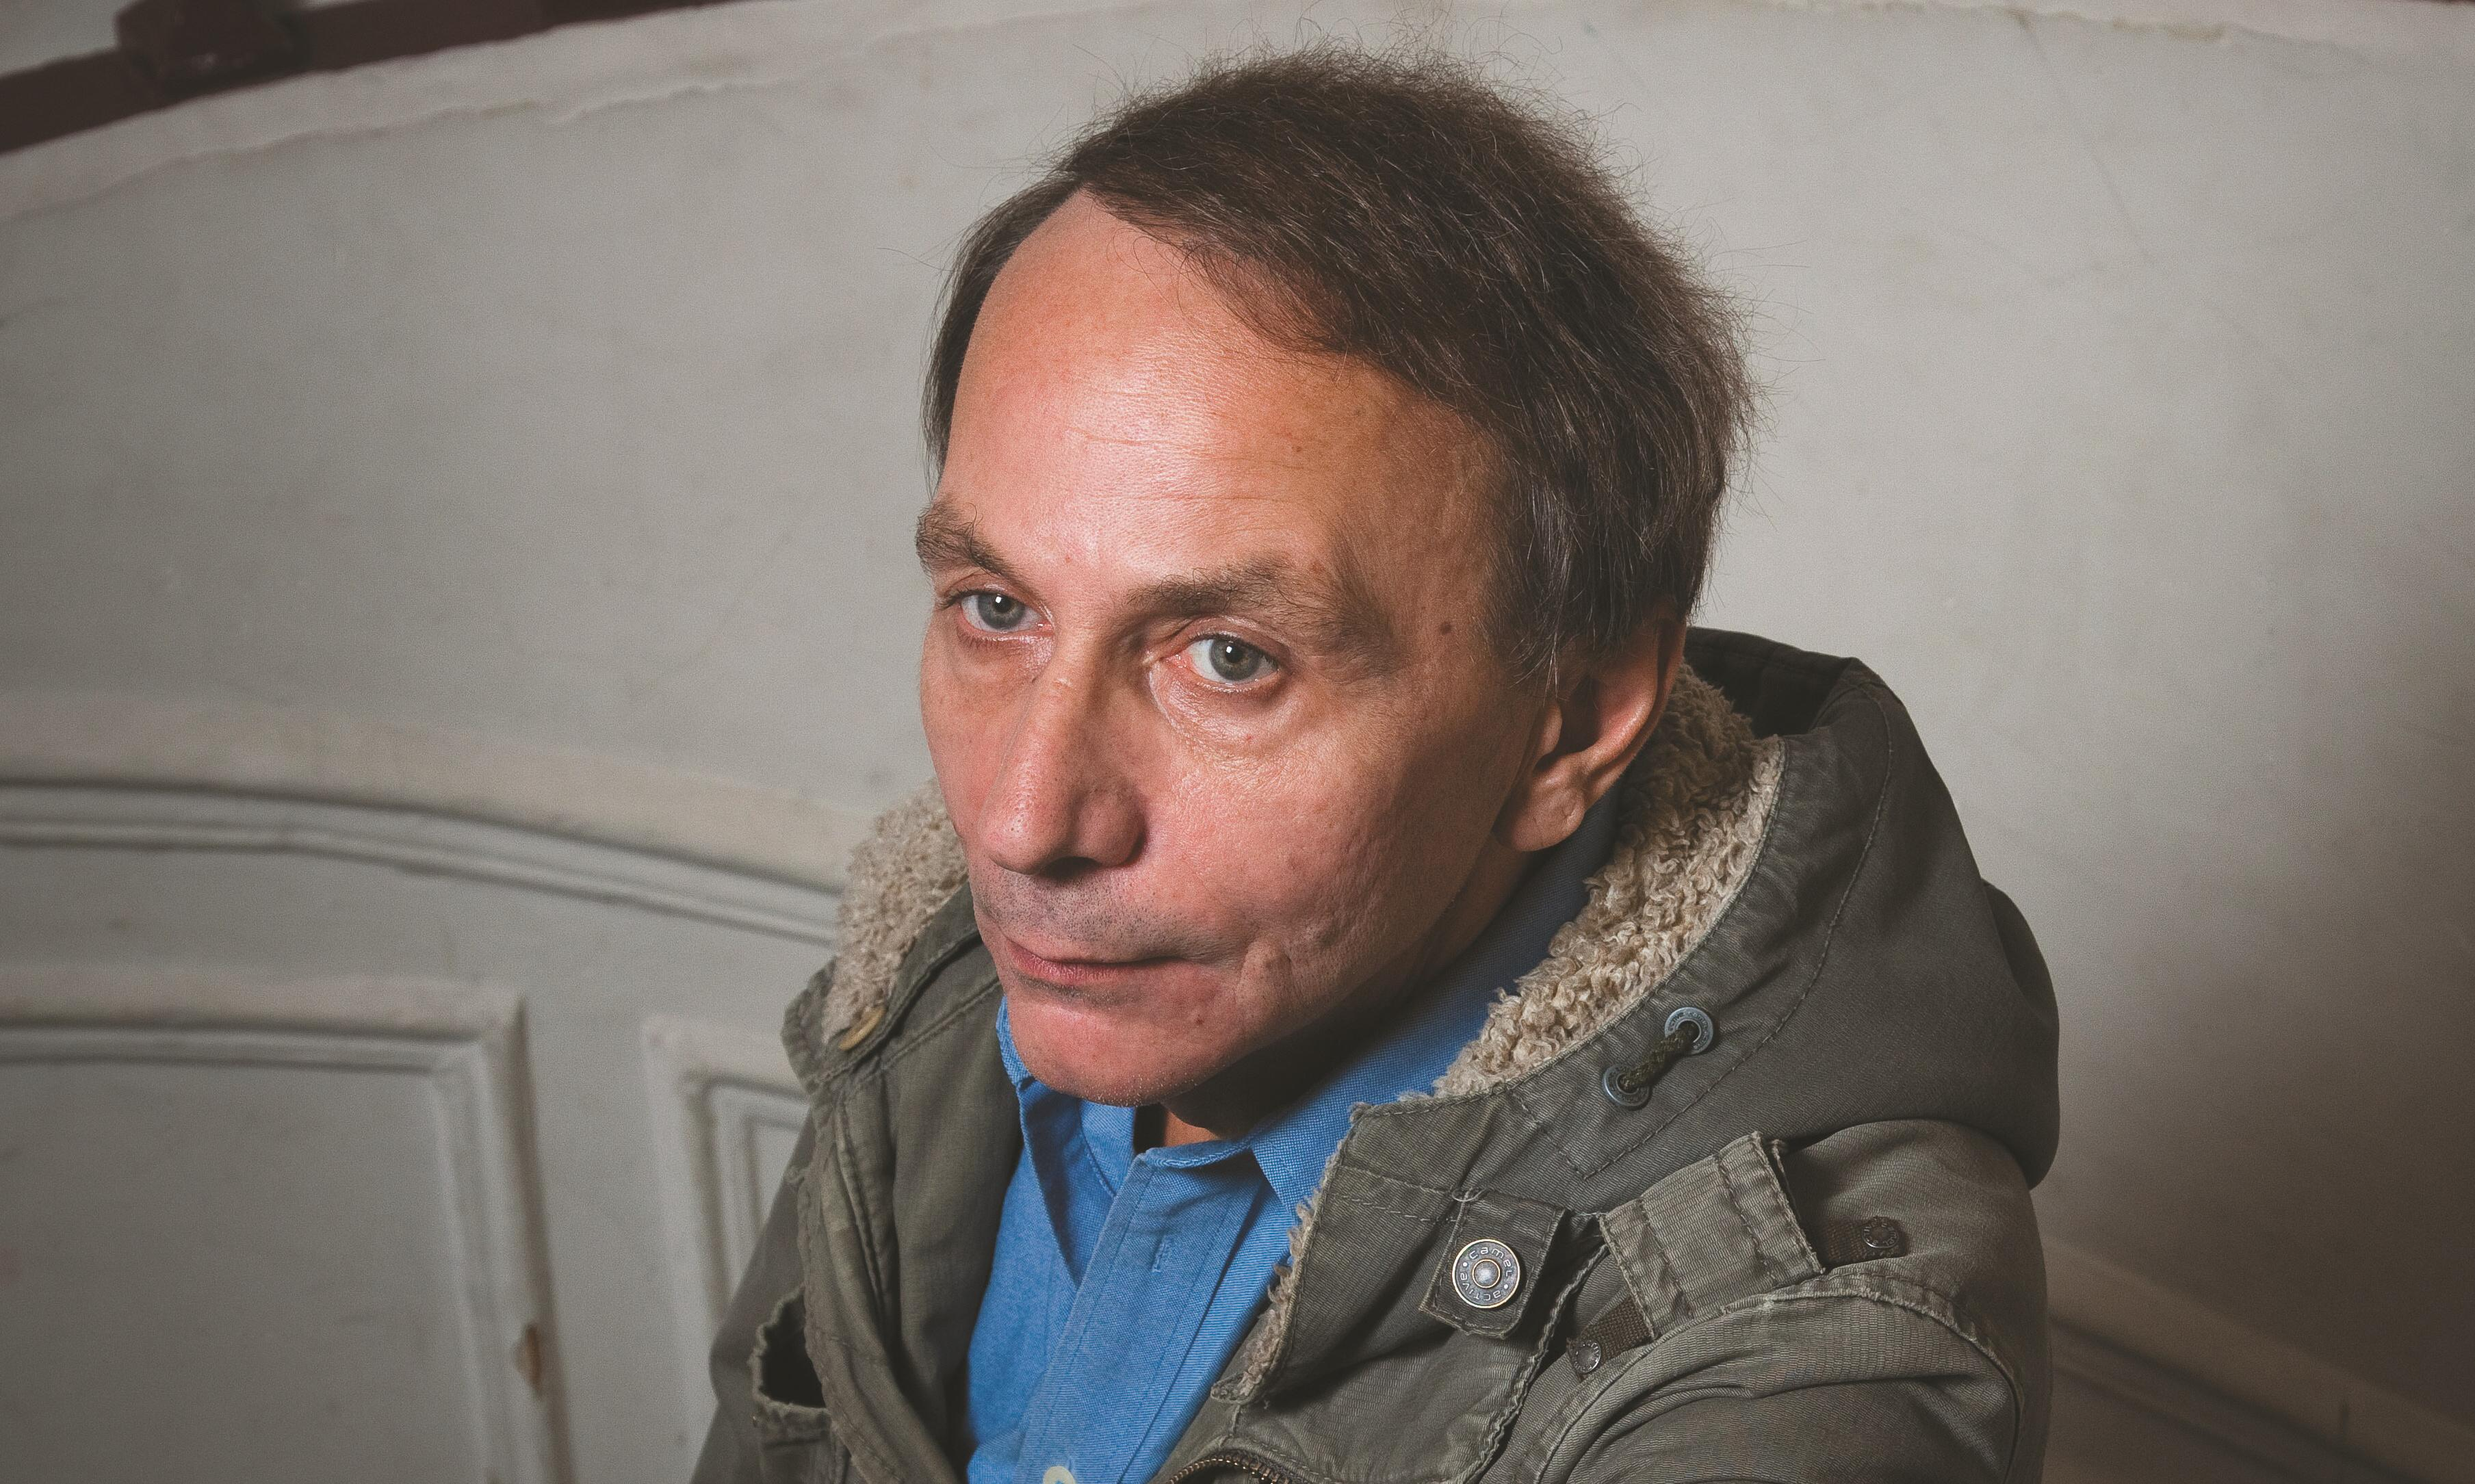 Serotonin by Michel Houellebecq review – Alan Partridge in Gilead